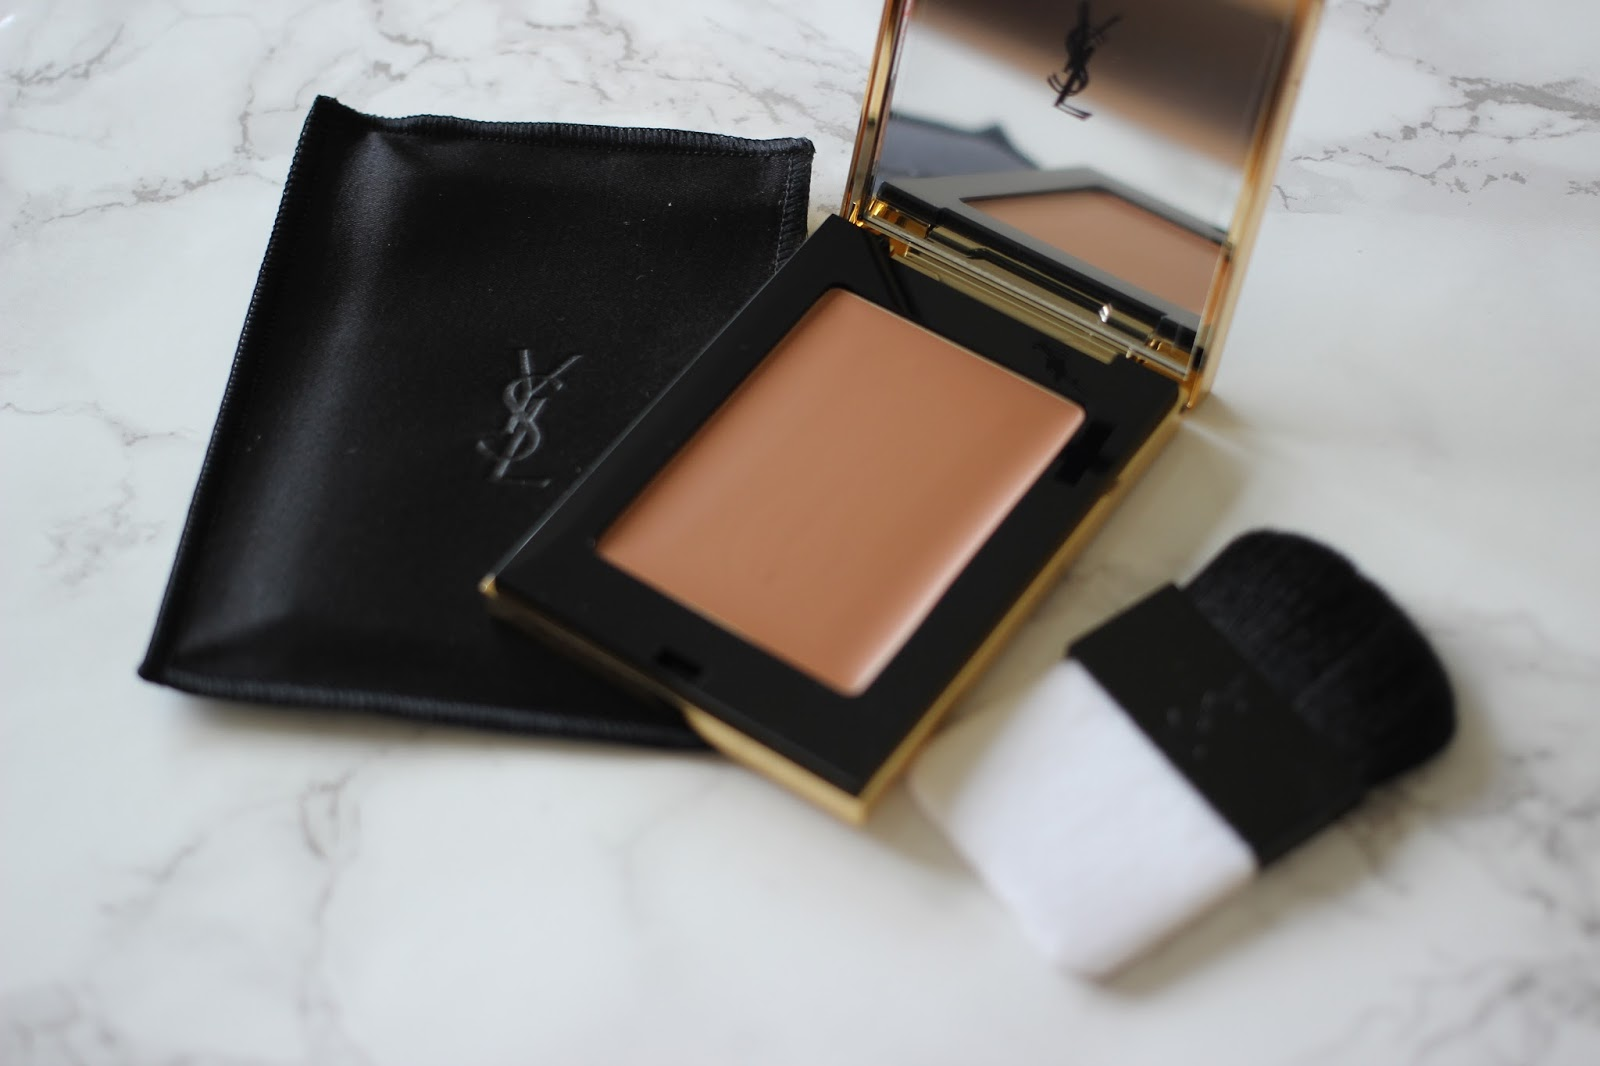 5dce6bc3e9a Review: YSL Les Sahariennes Blur Bronzer - 06 Sienna – Just Lovely ...